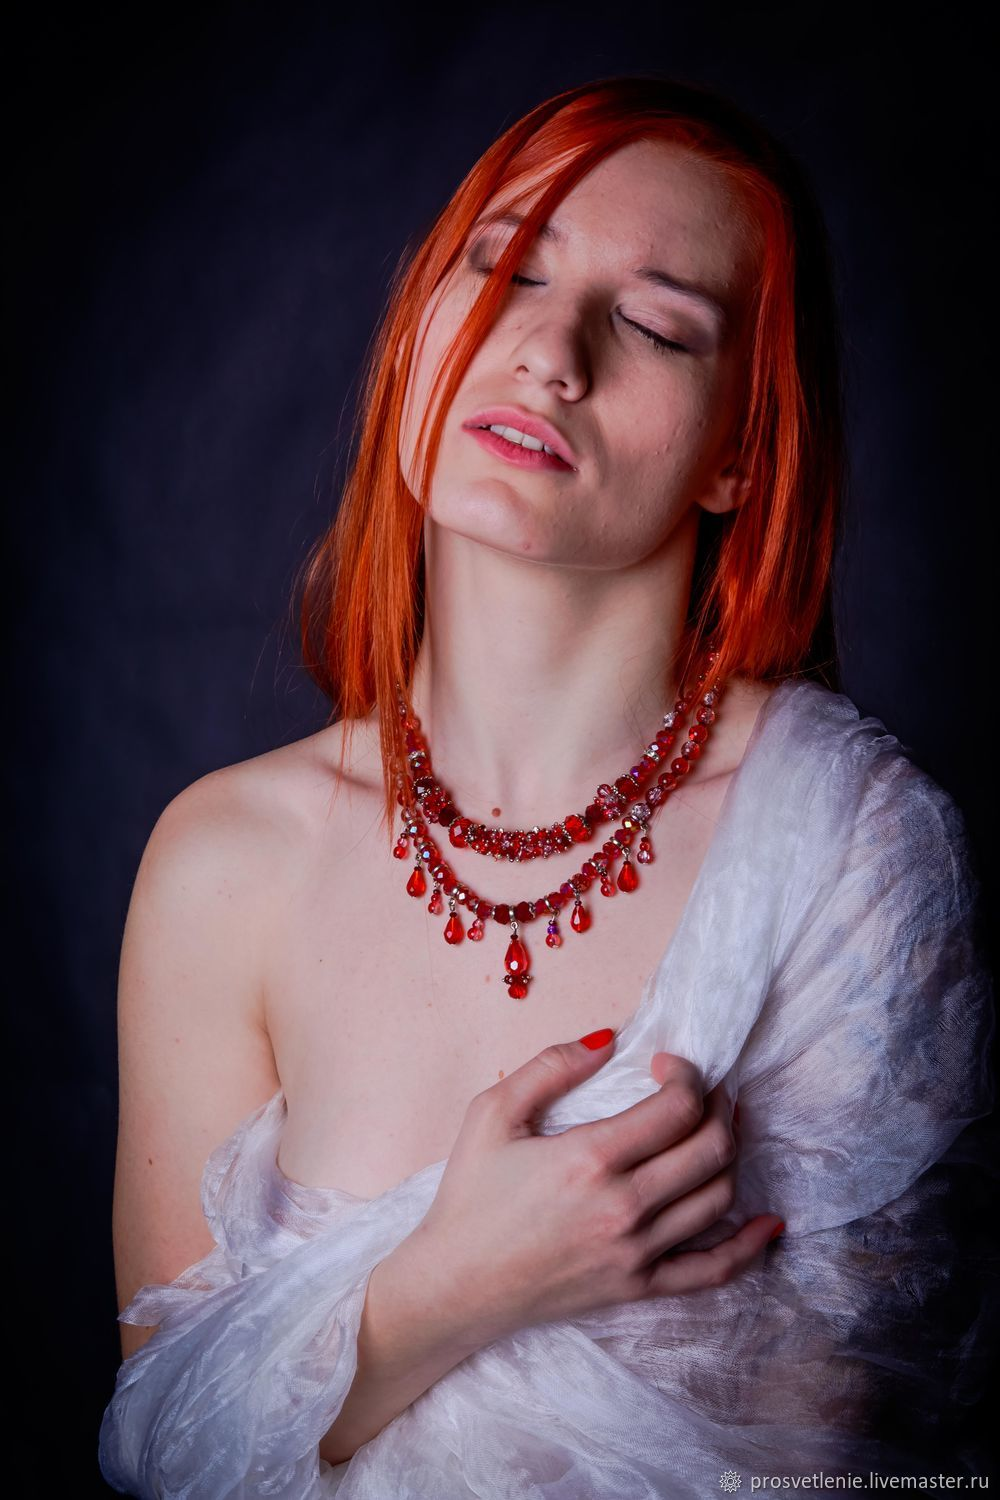 Decoration Svetlana Boiko to buy at the Fair Masters. Handmade. Decoration on the neck.Spectacular red necklace. Author's handmade necklace. Handmade jewelry. Bright charm necklace